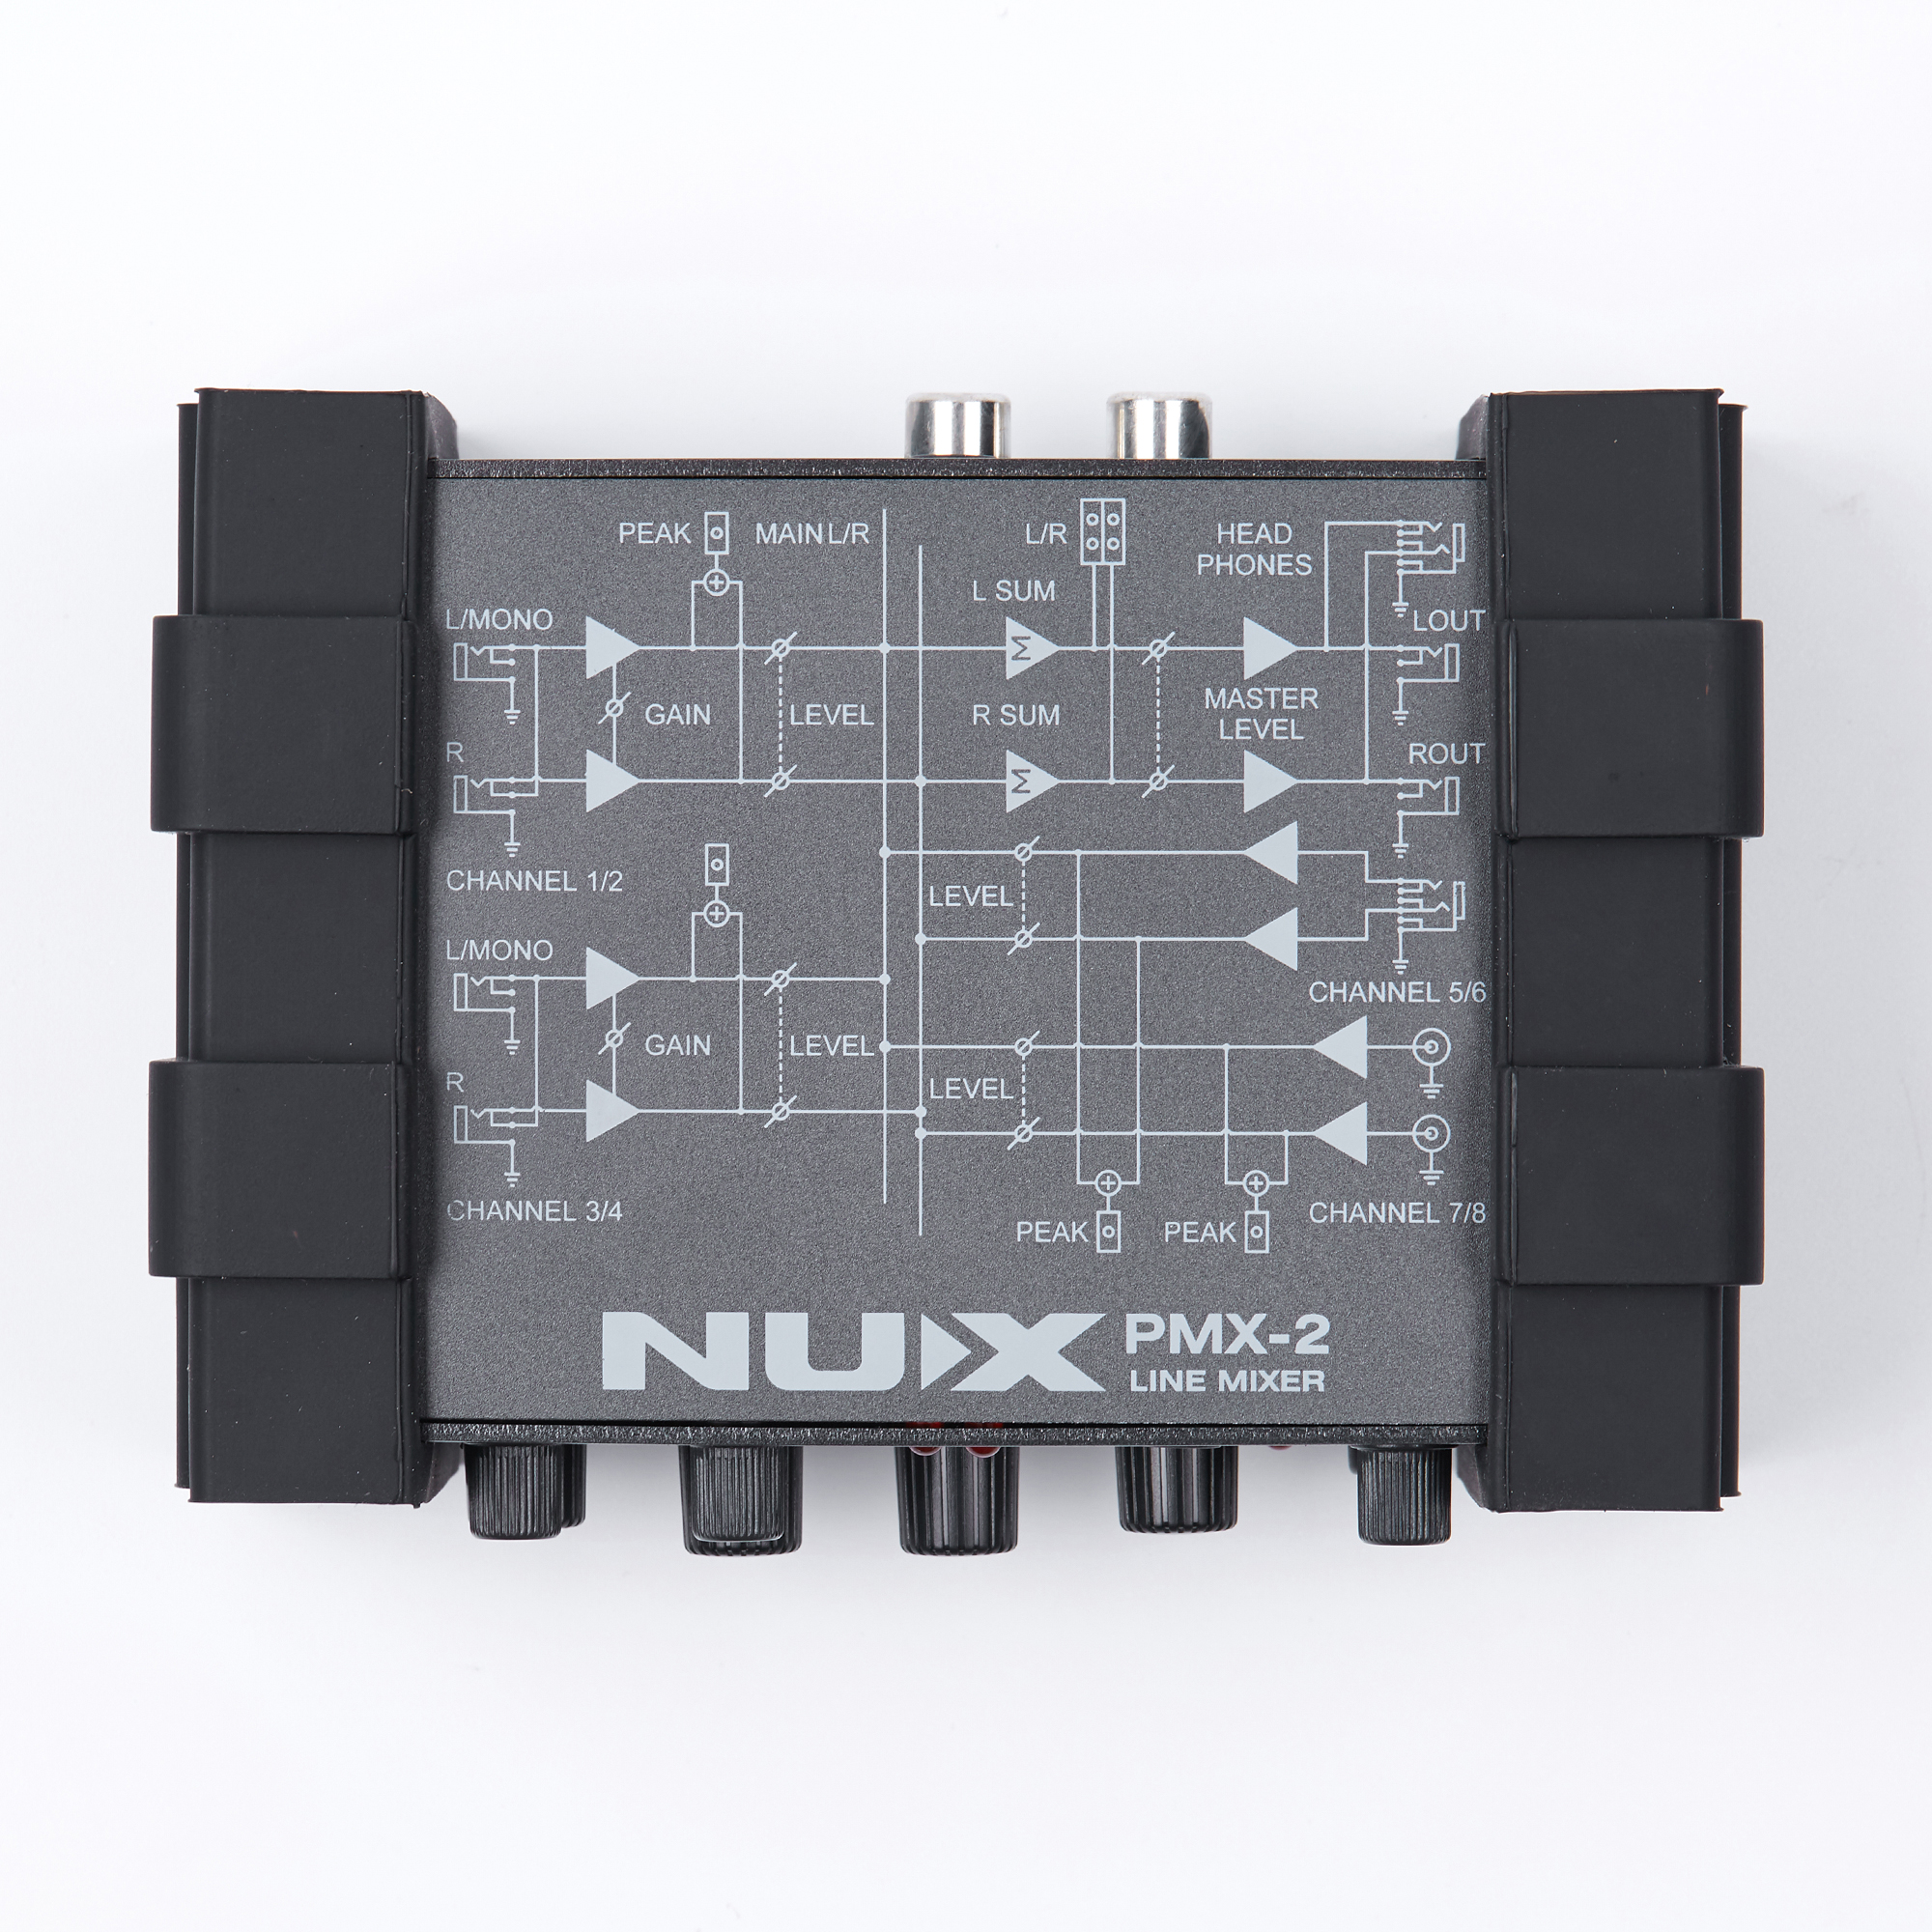 Gain Control 8 Inputs and 2 Outputs NUX PMX-2 Multi-Channel Mini Mixer 30 Musical Instruments Accessories for Guitar Bass Player косухи sevilla косуха